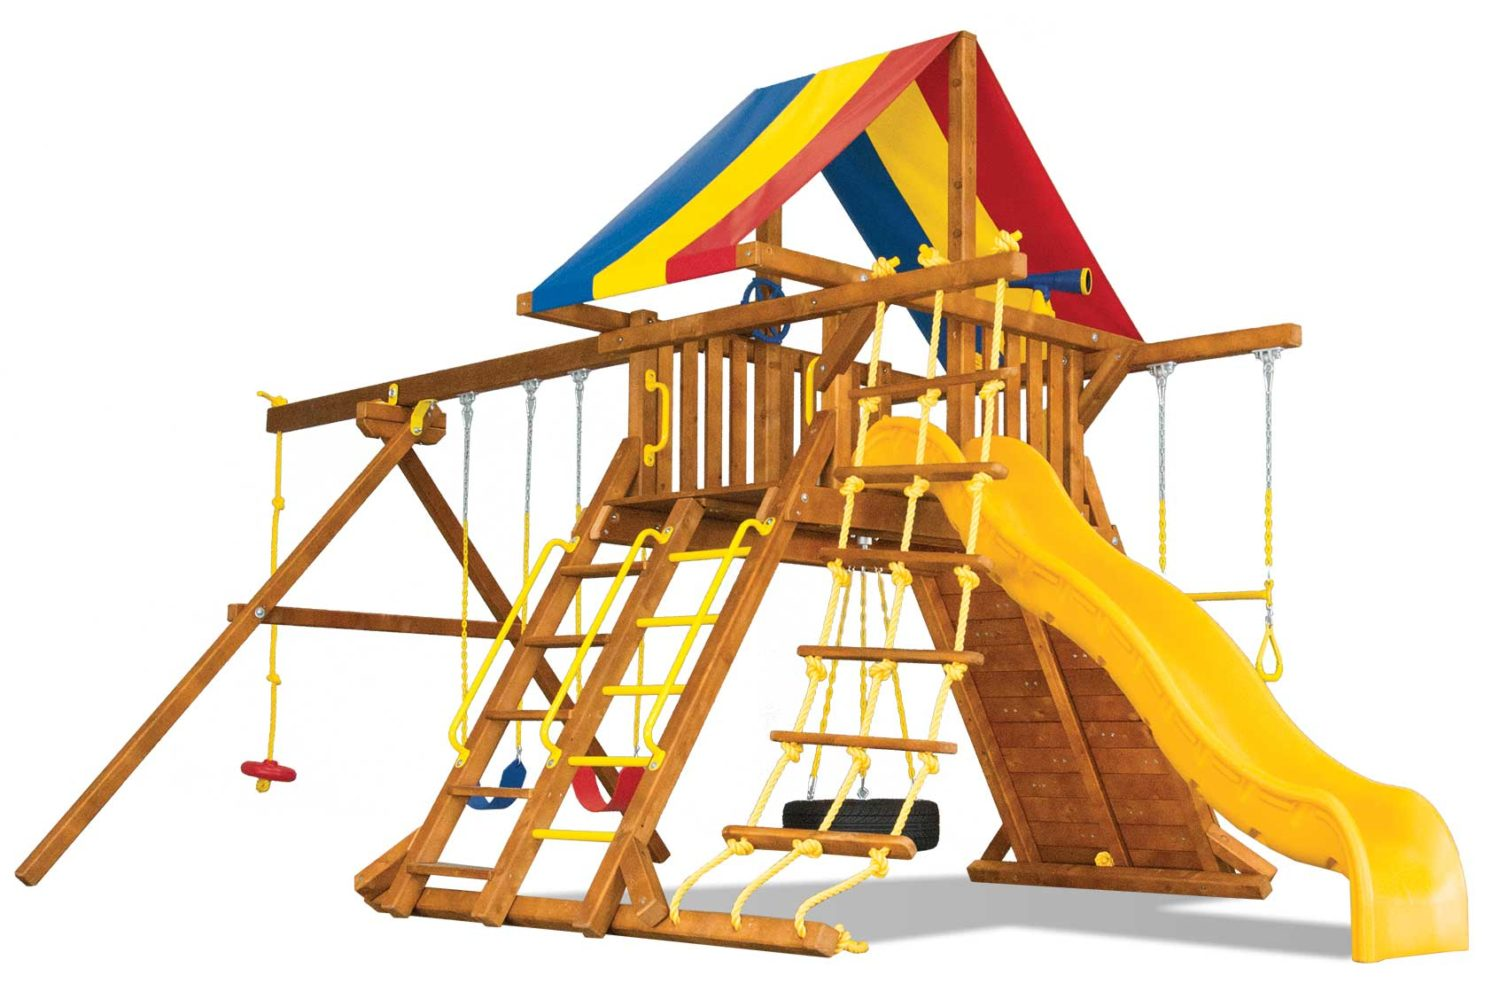 Circus Turbo Feature Castle Pkg II Wooden Swing Set